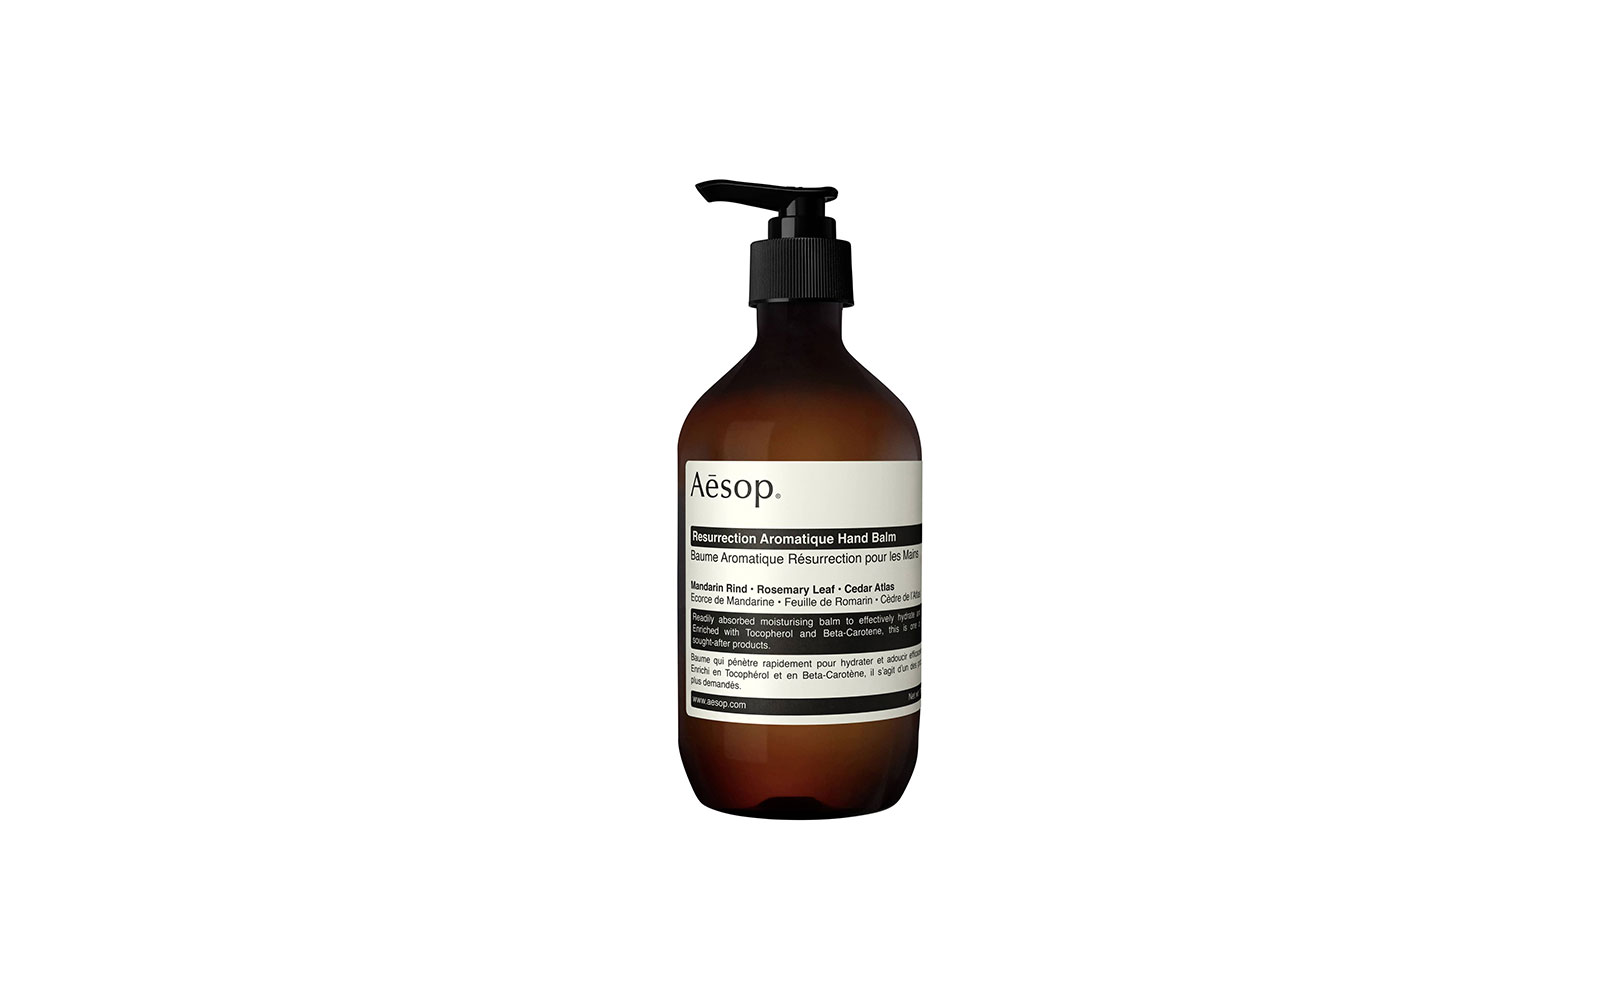 Best Non-oily Hand Cream: Aesop Resurrection Aromatique Hand Balm